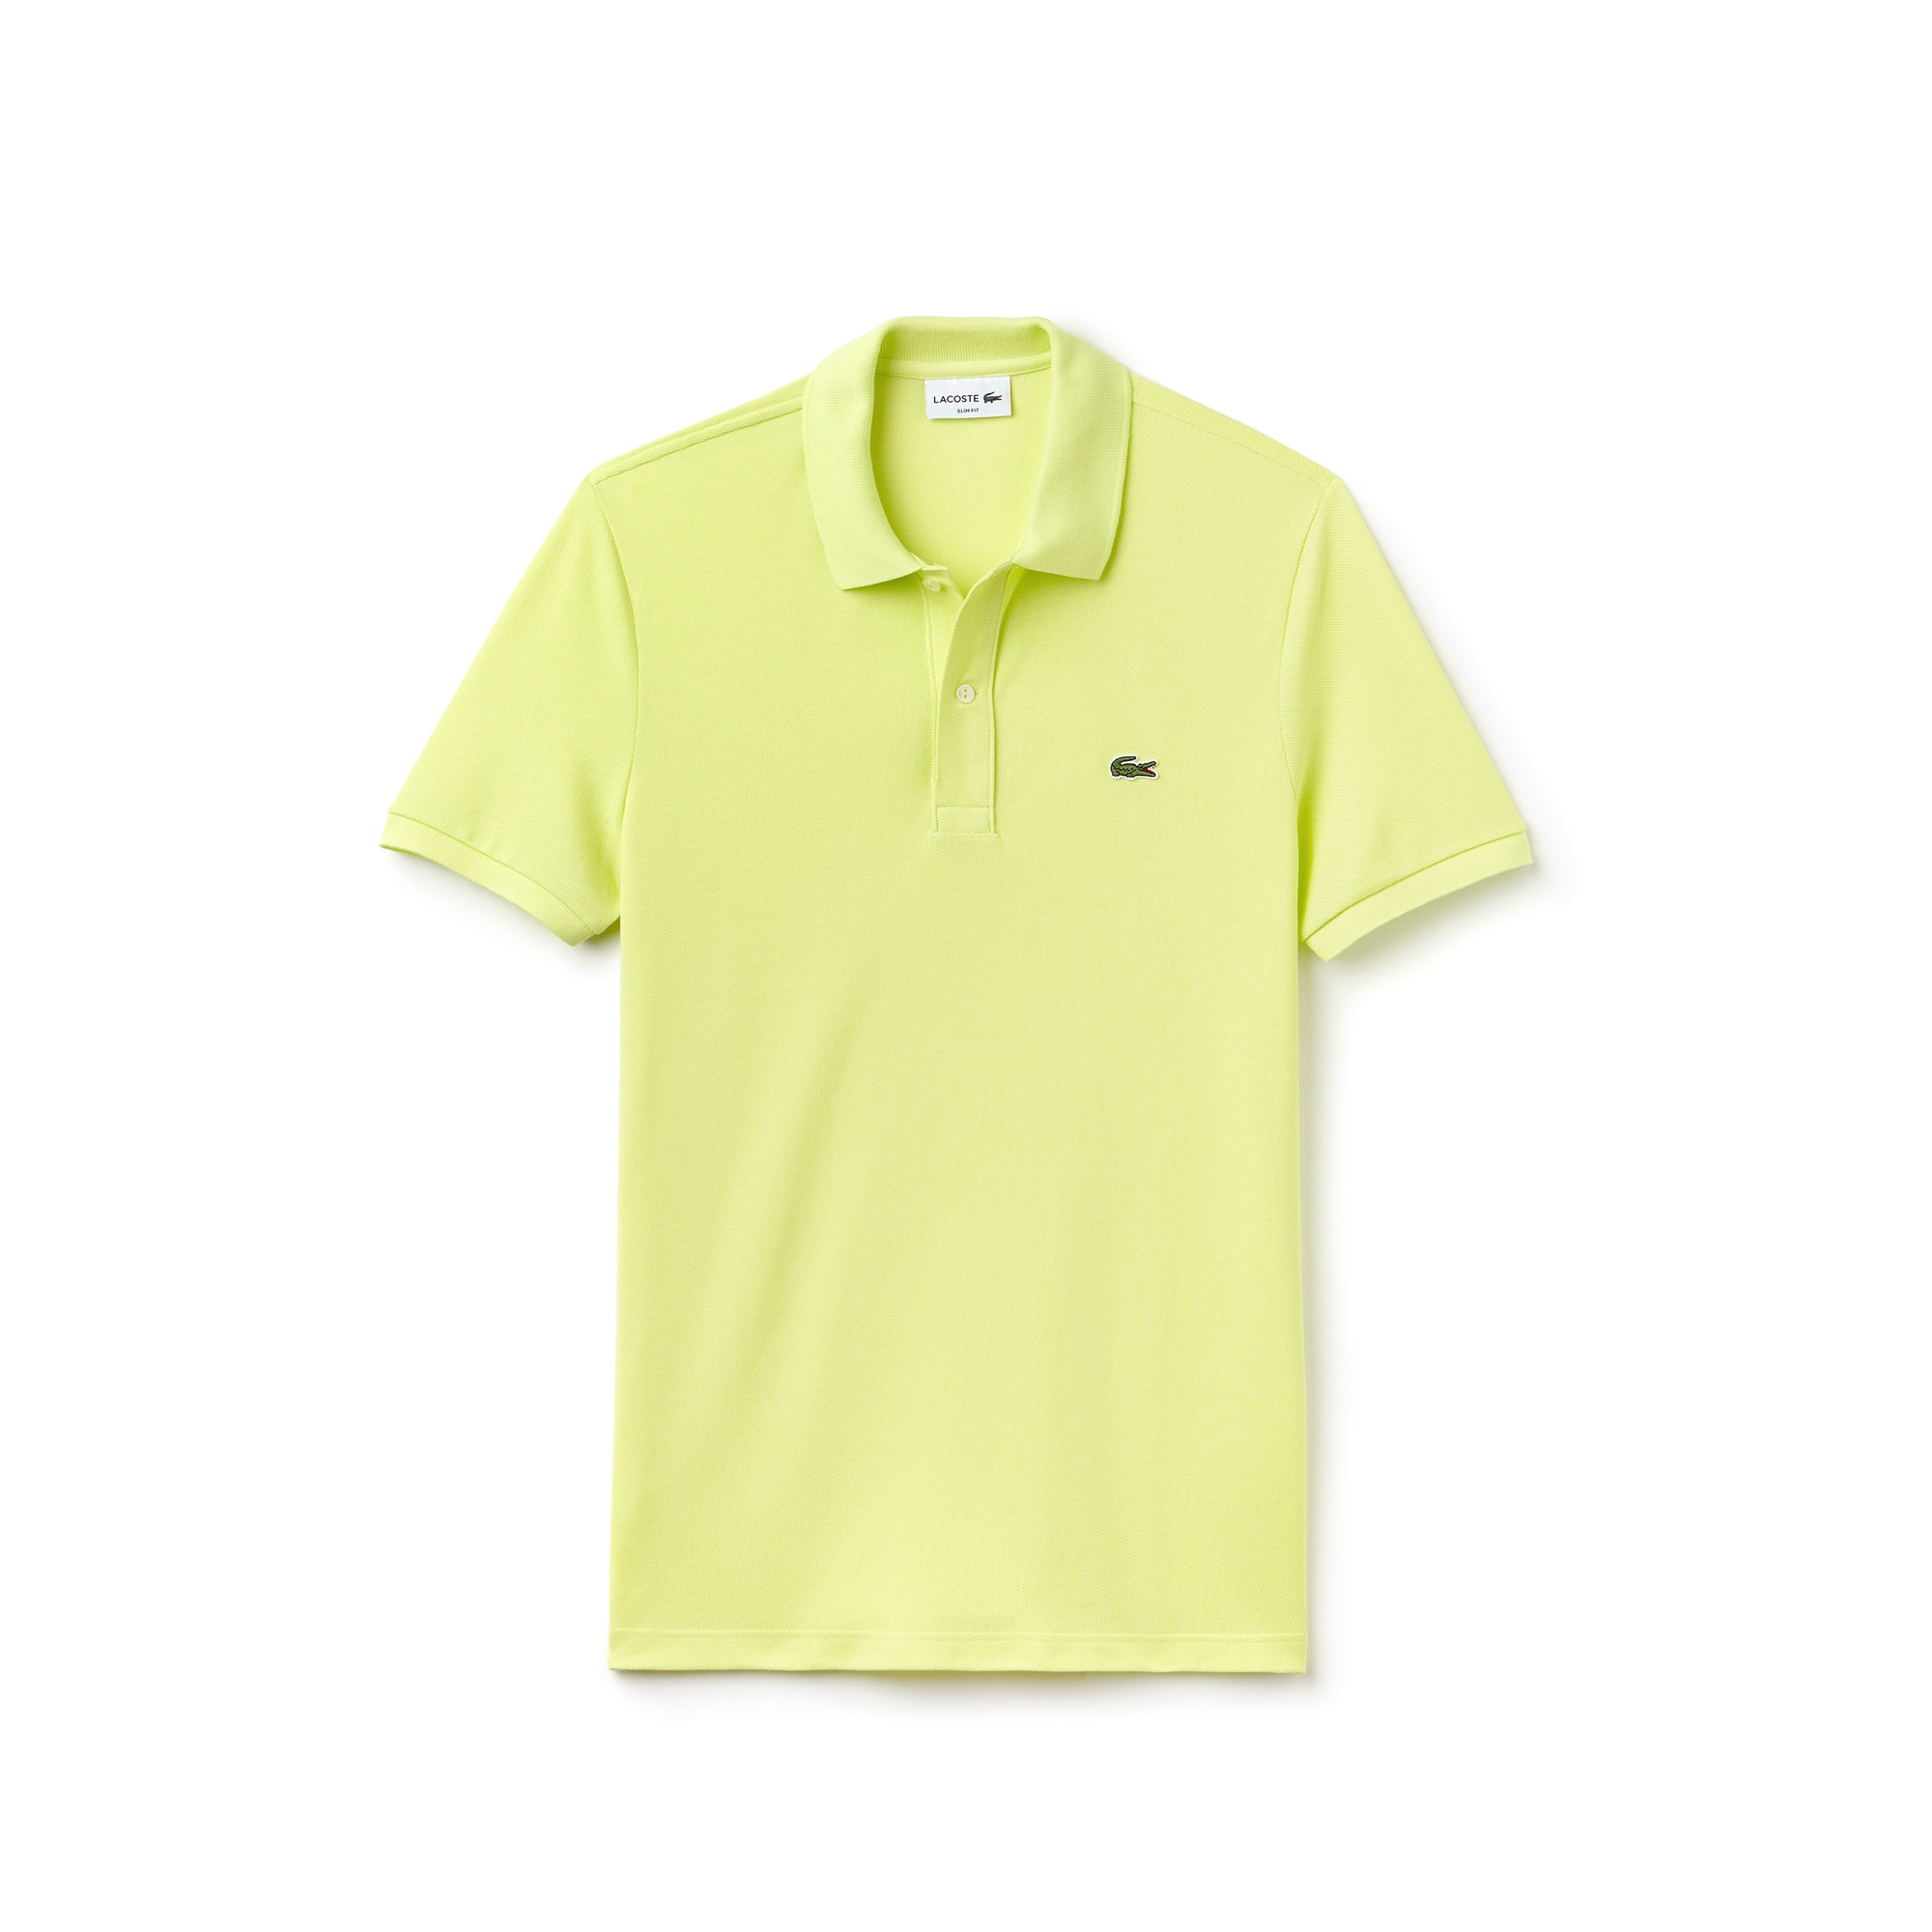 Men's Petit Piqué Slim Fit Polo Shirt